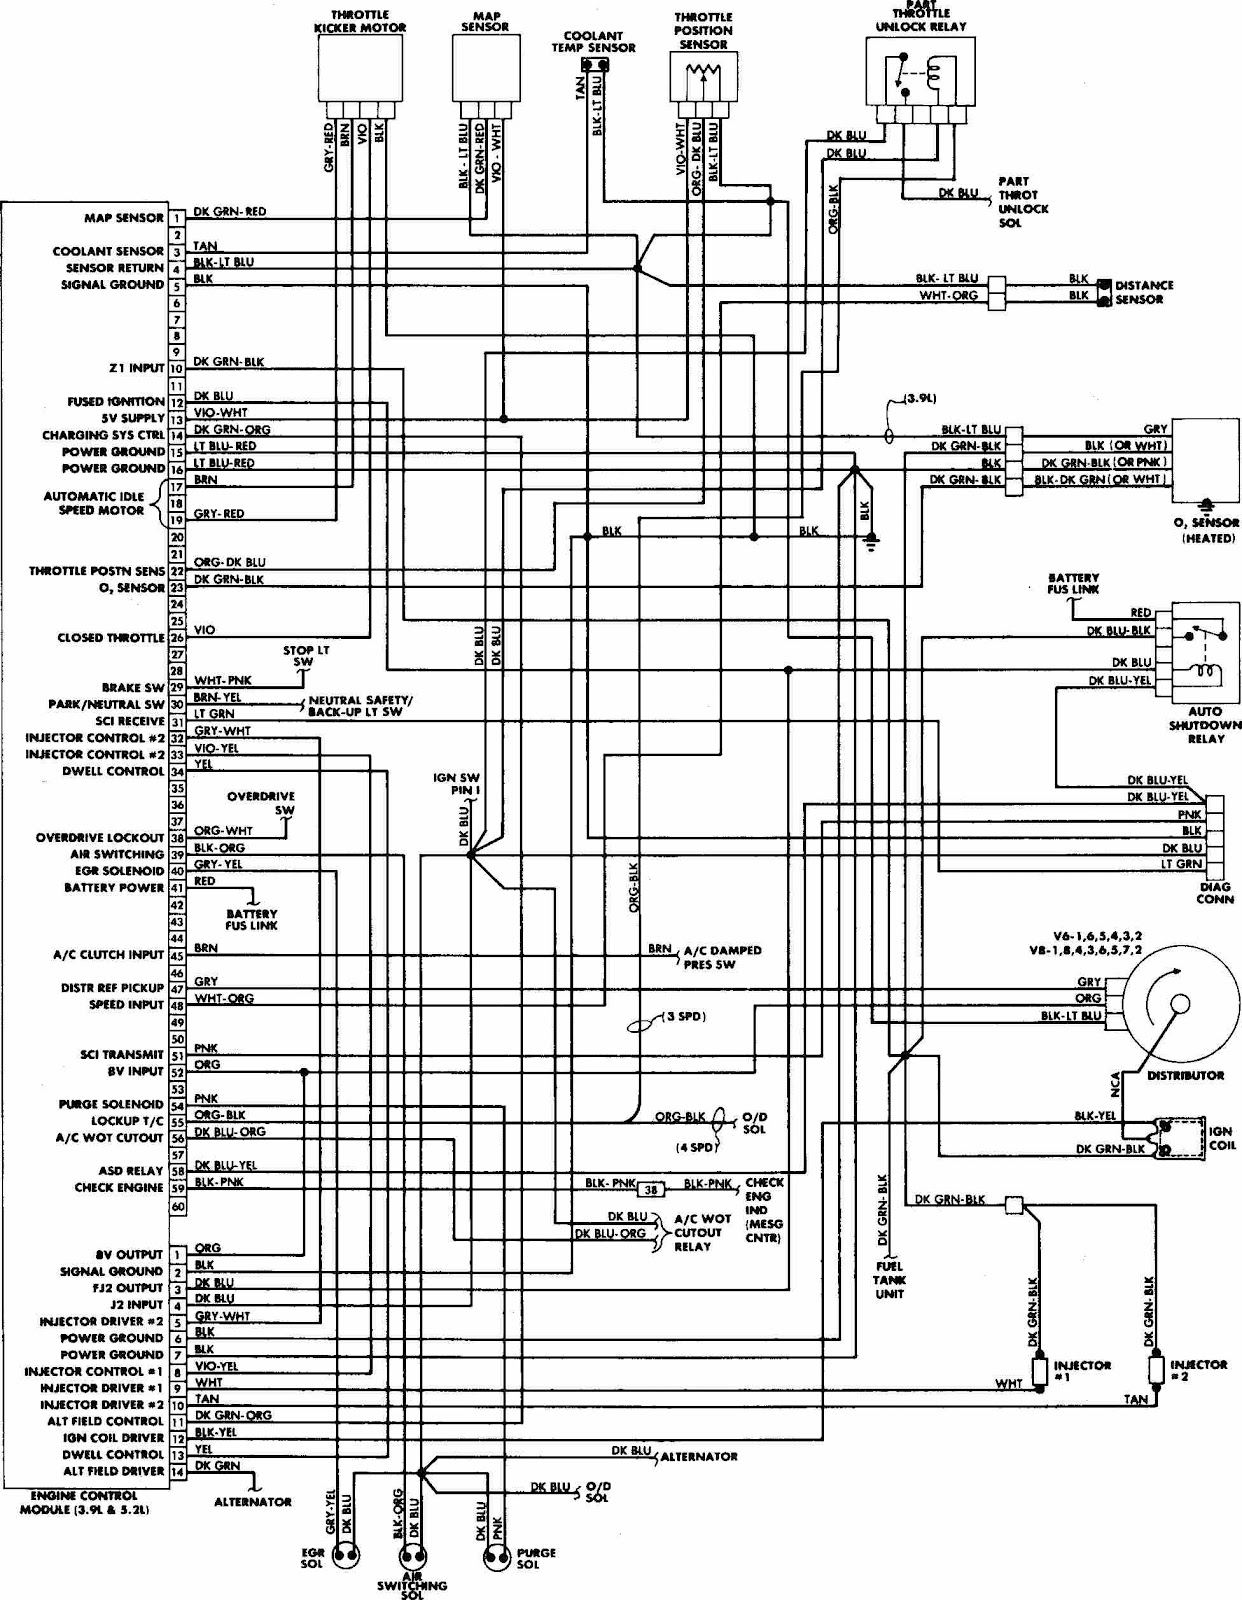 Dodge Rampage Wiring Diagrams | Wiring Diagram - Dodge Ignition Wiring Diagram